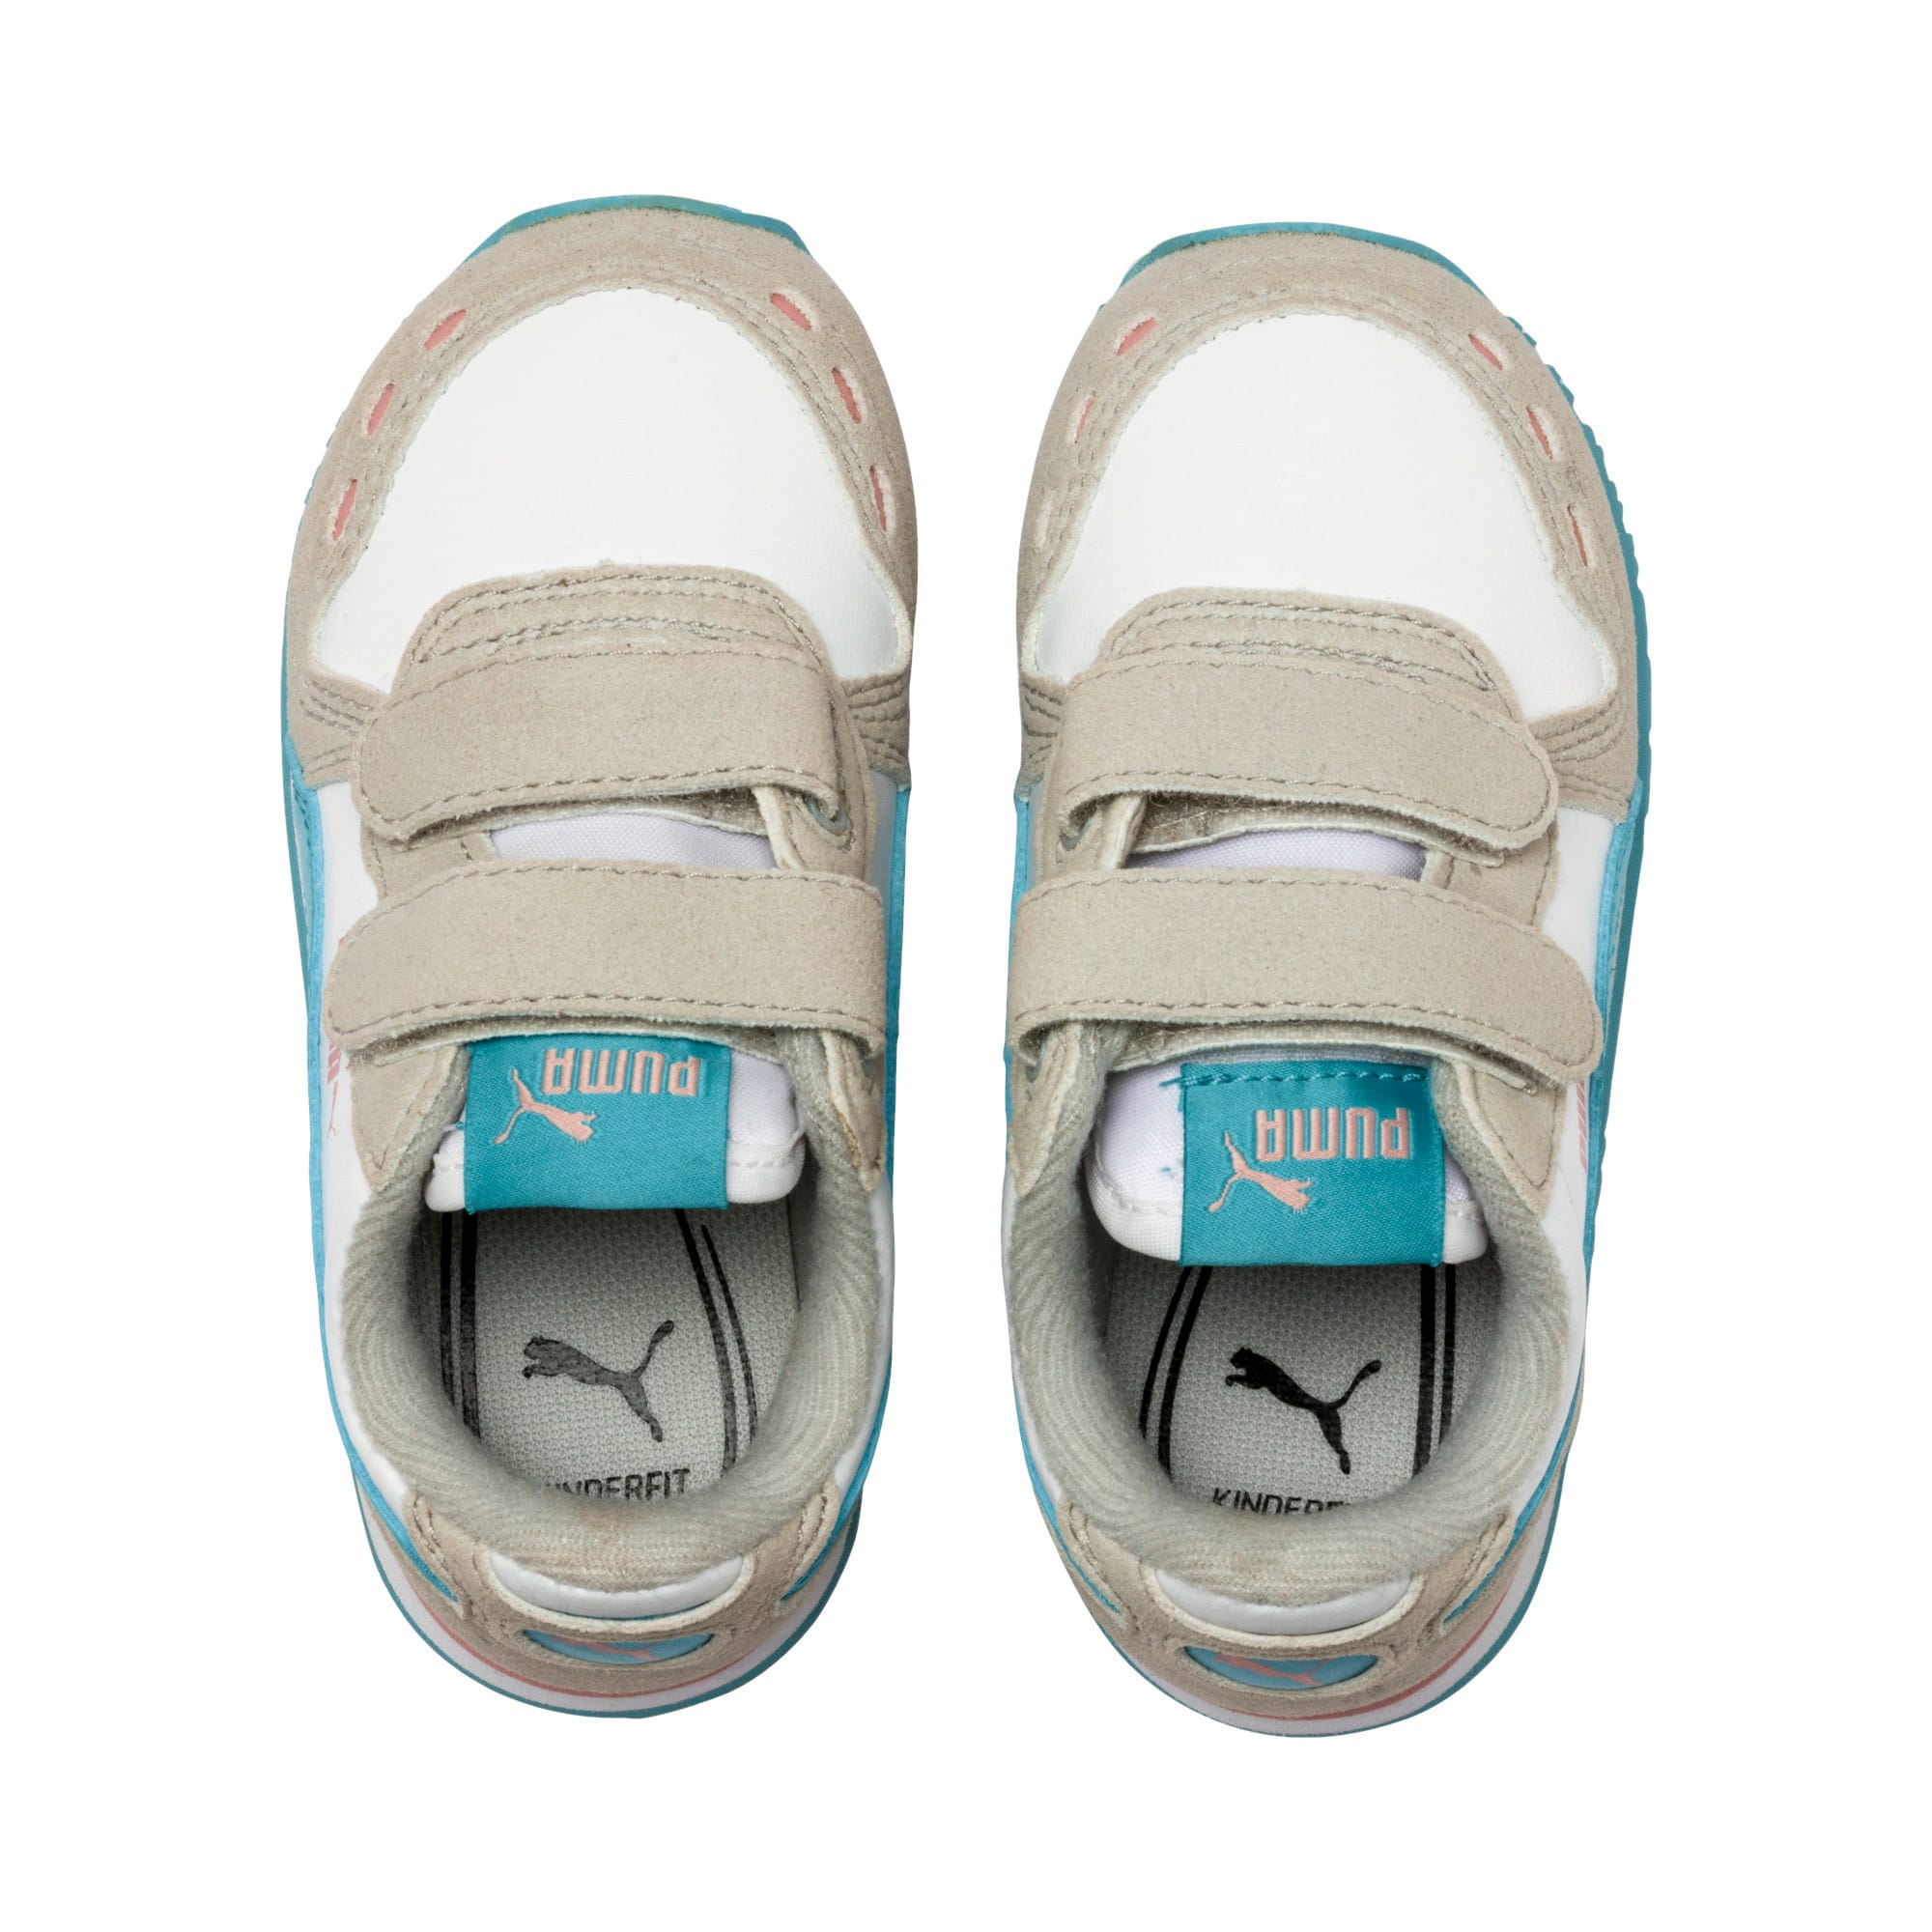 Thumbnail 6 of Cabana Racer SL Baby Trainers, Puma White-Milky Blue, medium